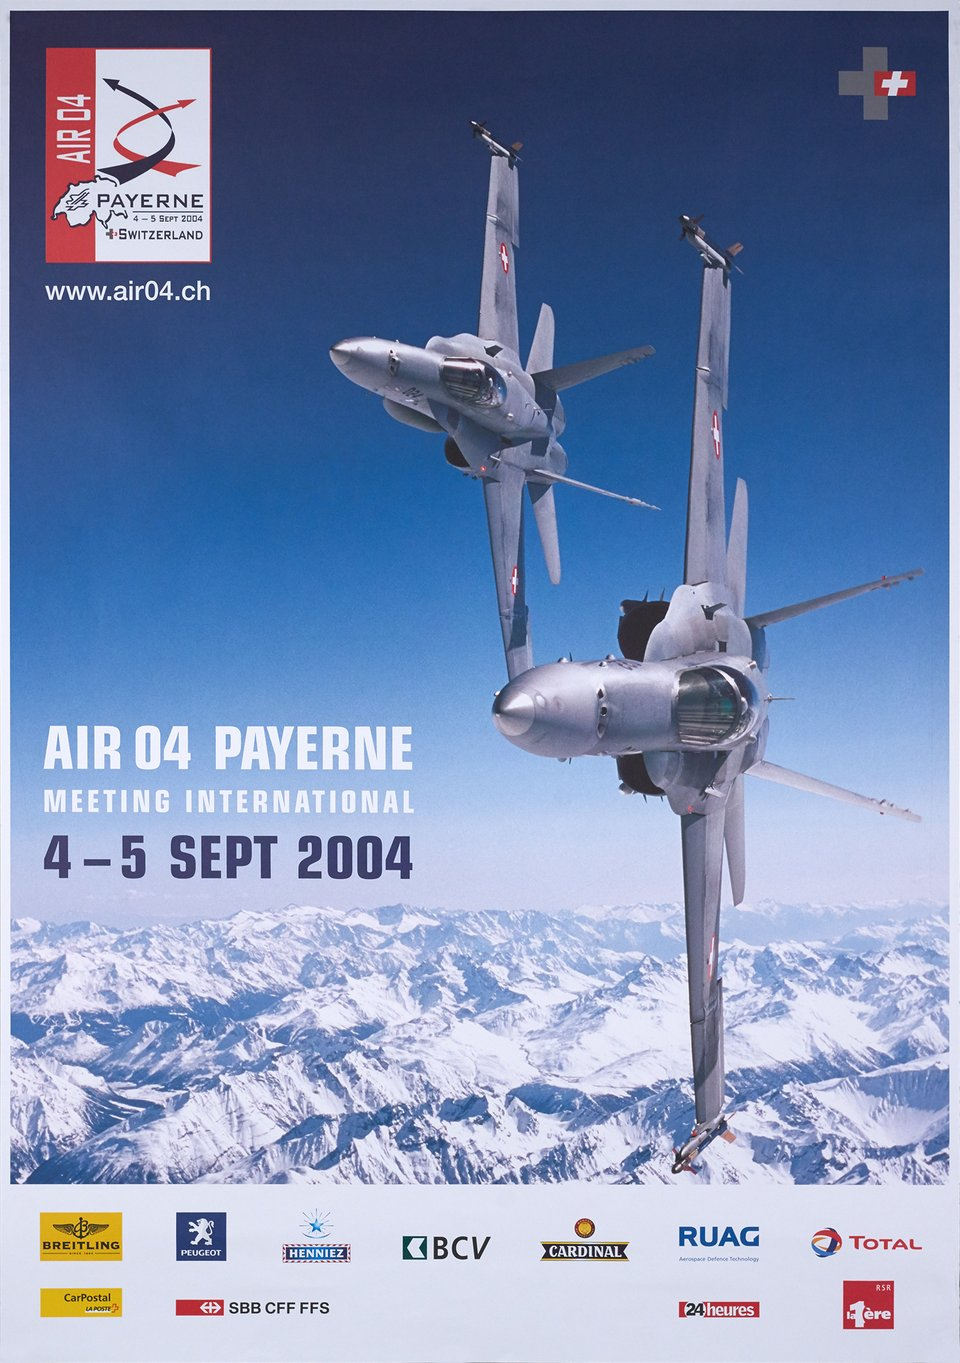 Air 04 Payerne, Meeting International – Affiche ancienne –  ANONYME – 2004